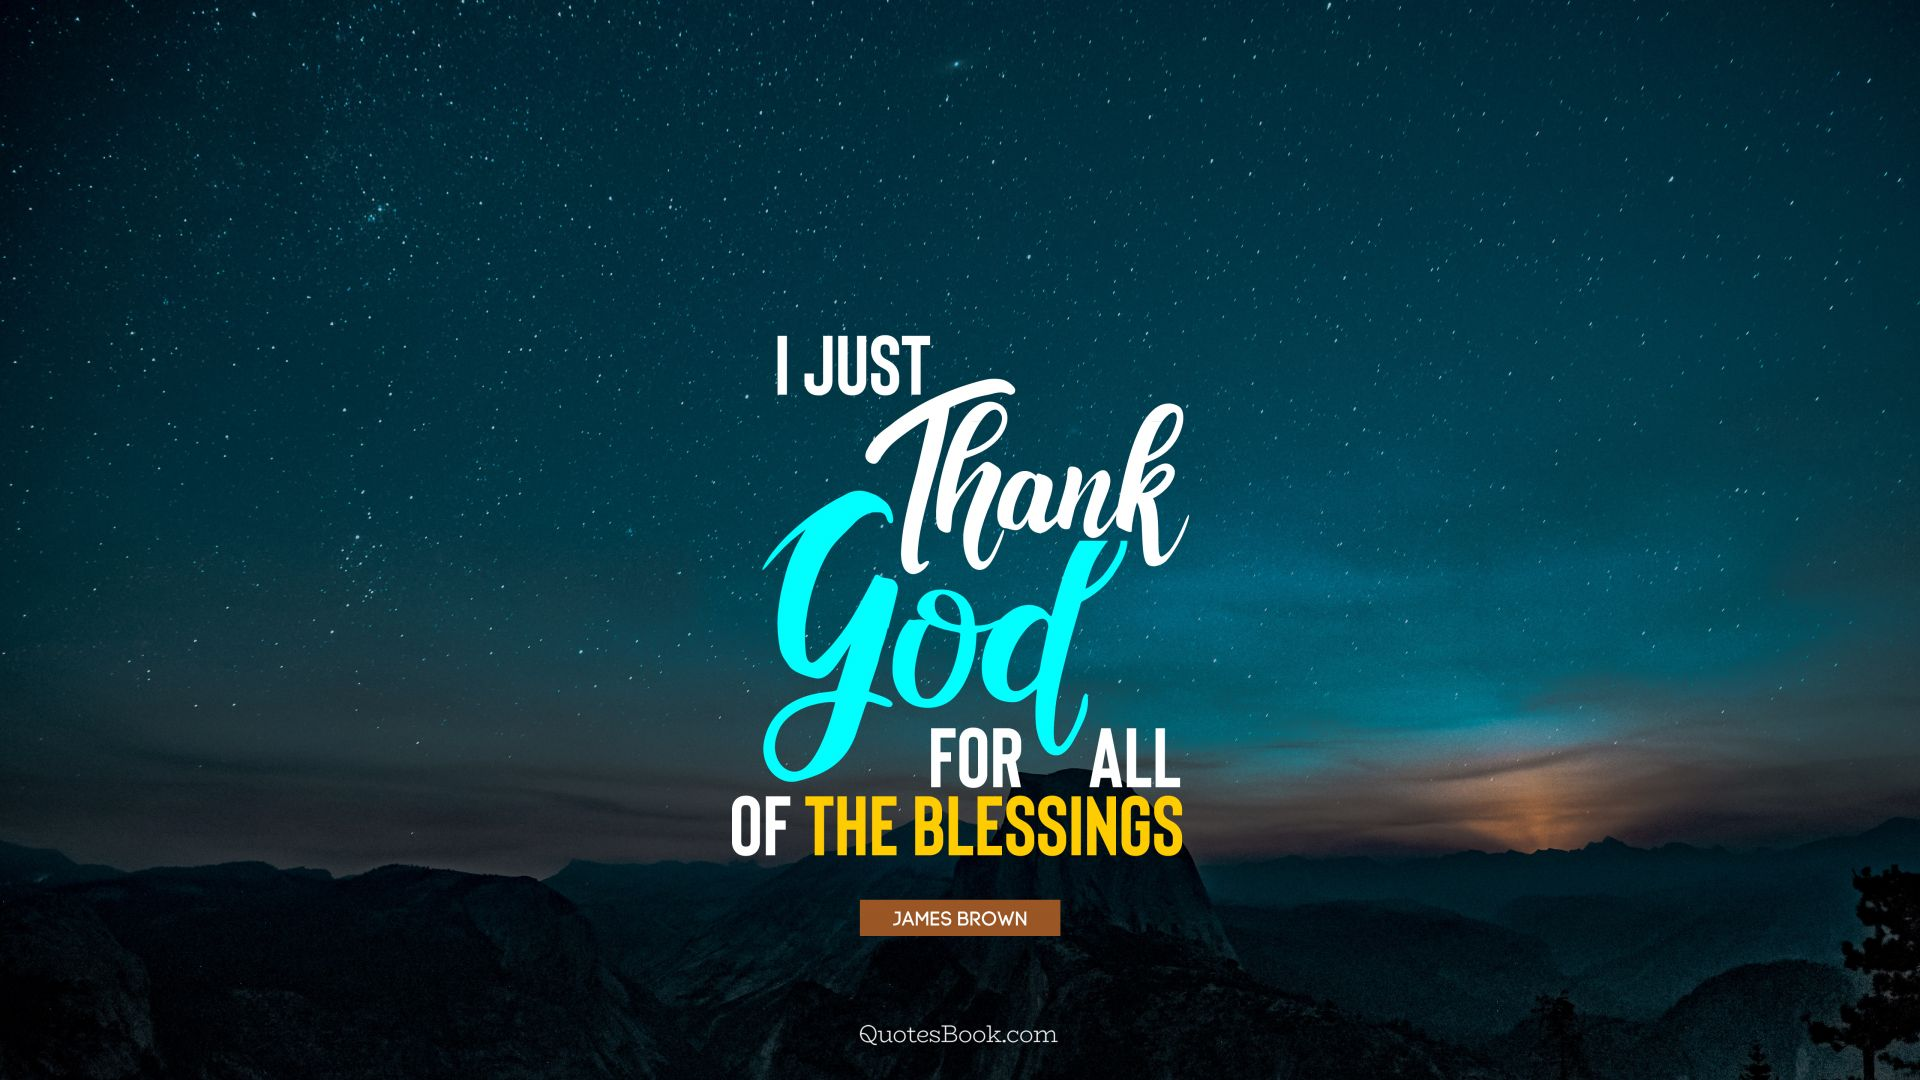 I just thank God for all of the blessings. - Quote by James Brown